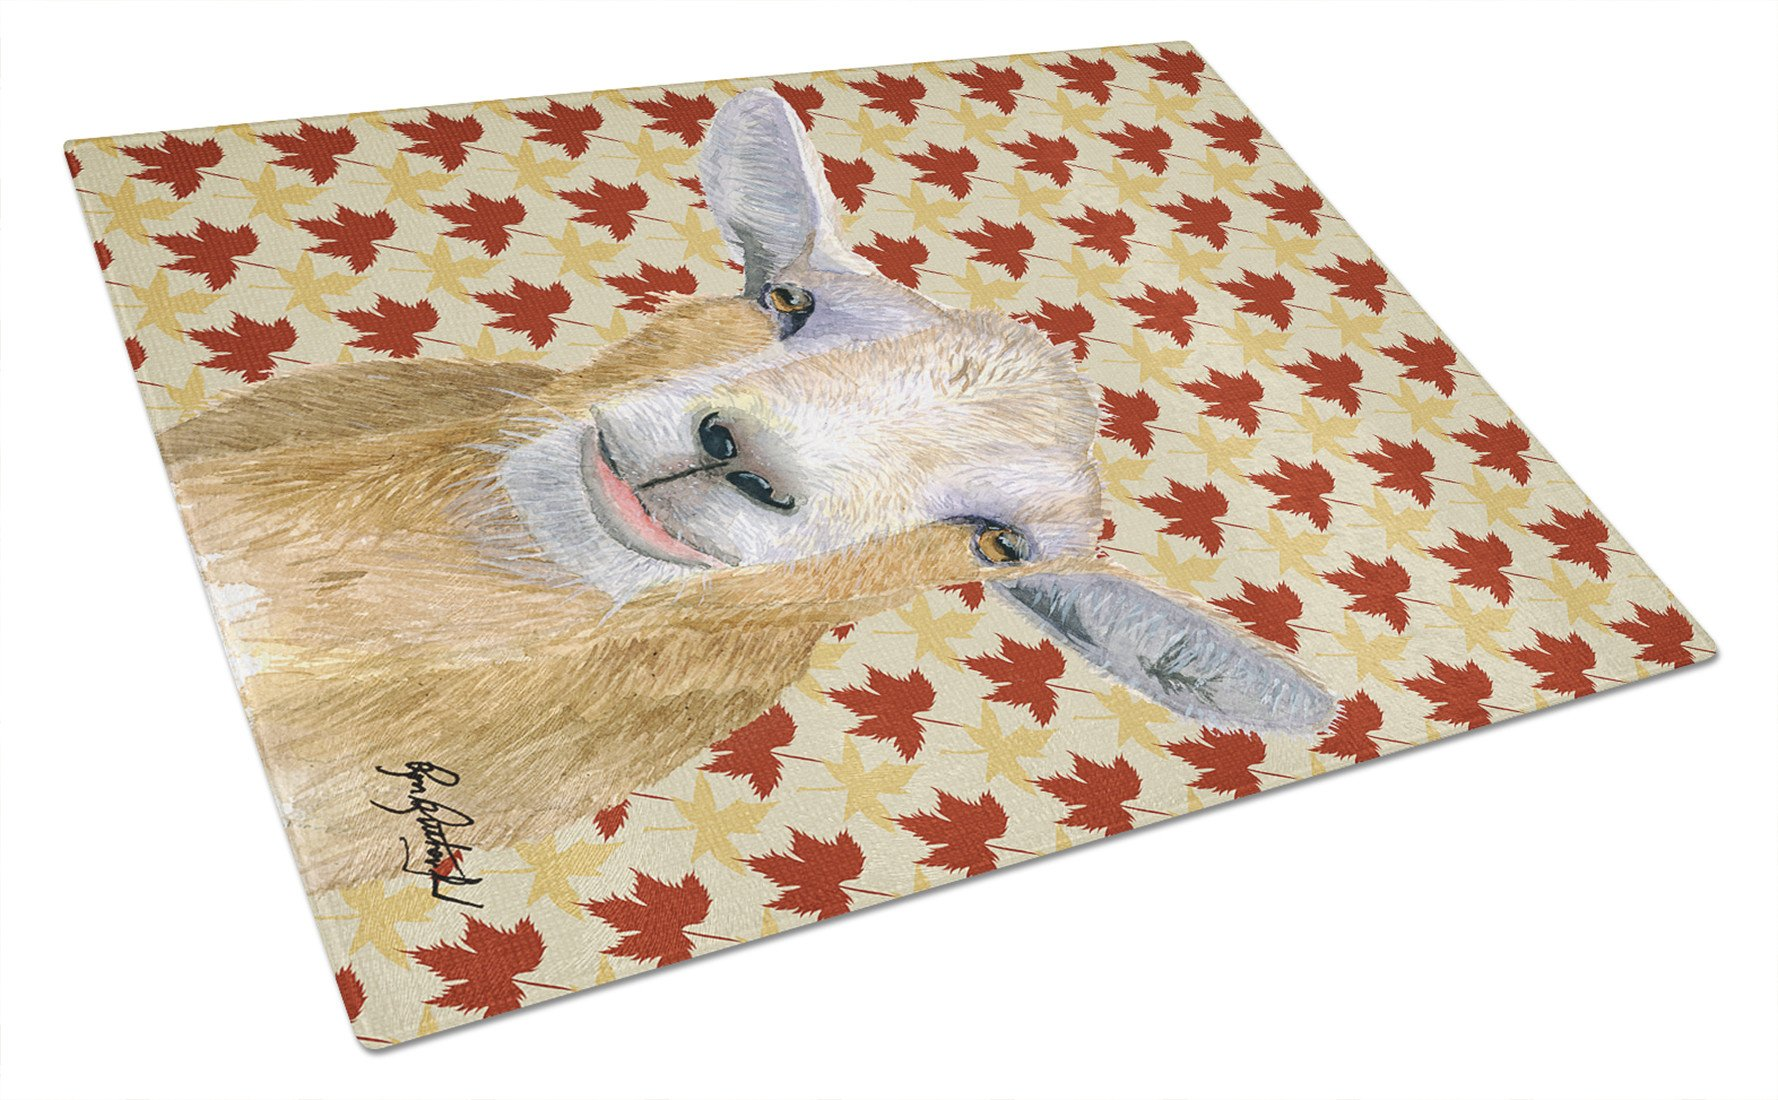 Fall Leaves Goat Glass Cutting Board Large by Caroline's Treasures